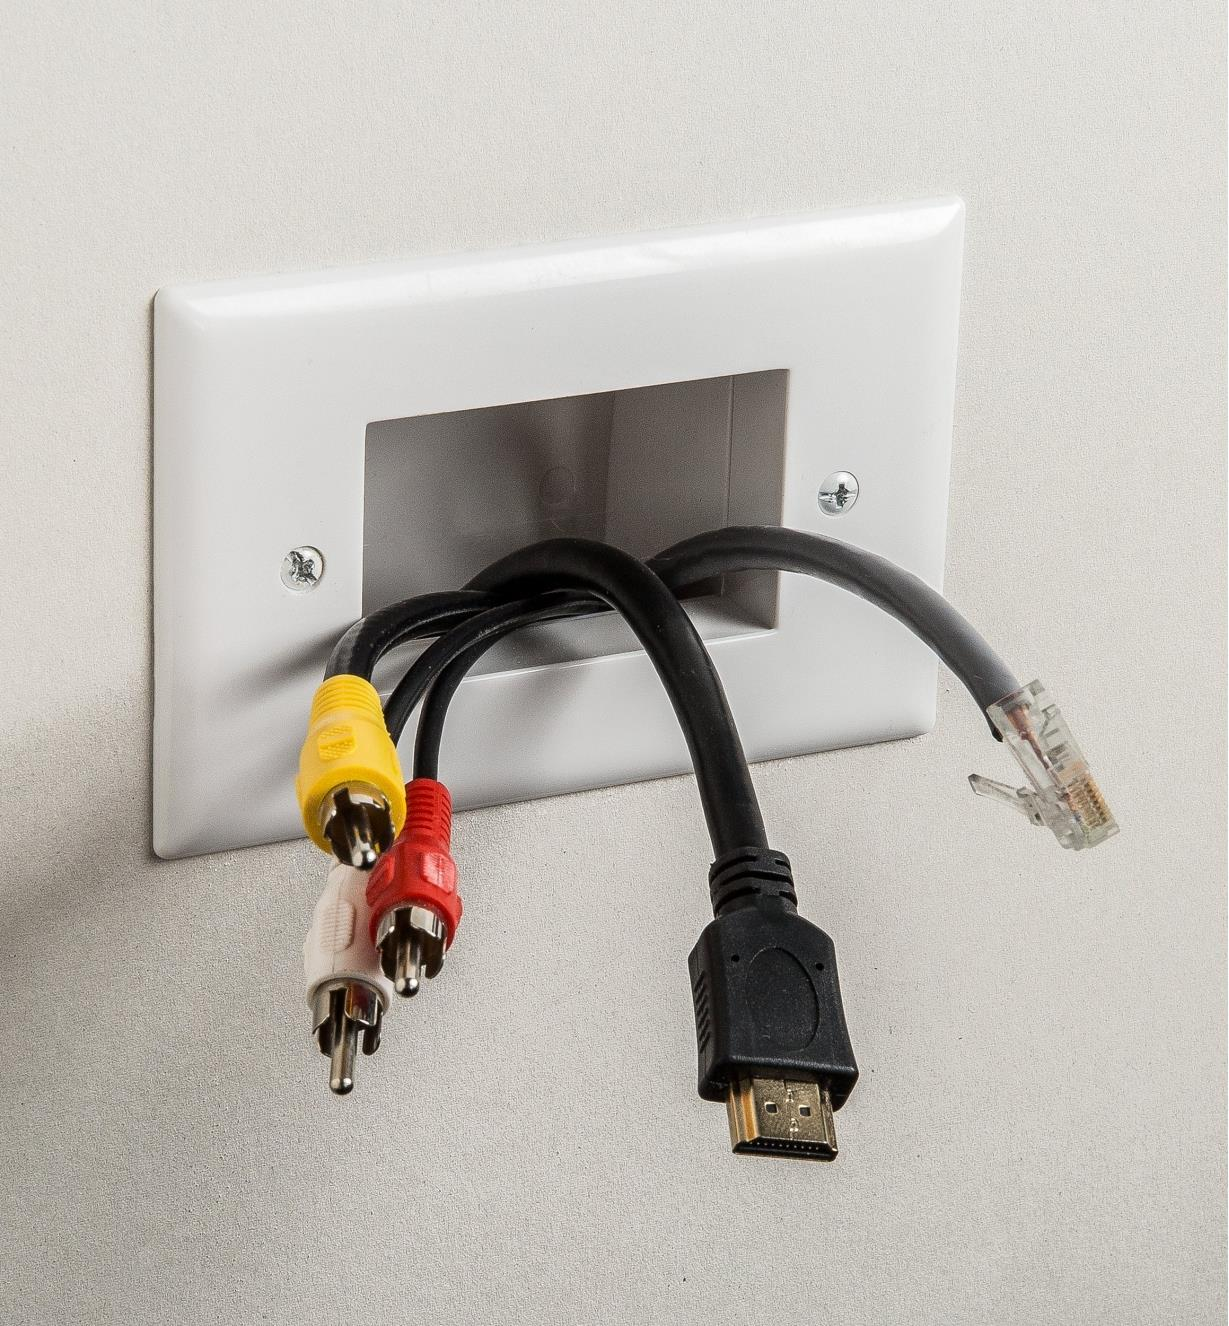 Datacomm Open Port mounted to wall with cords passing through